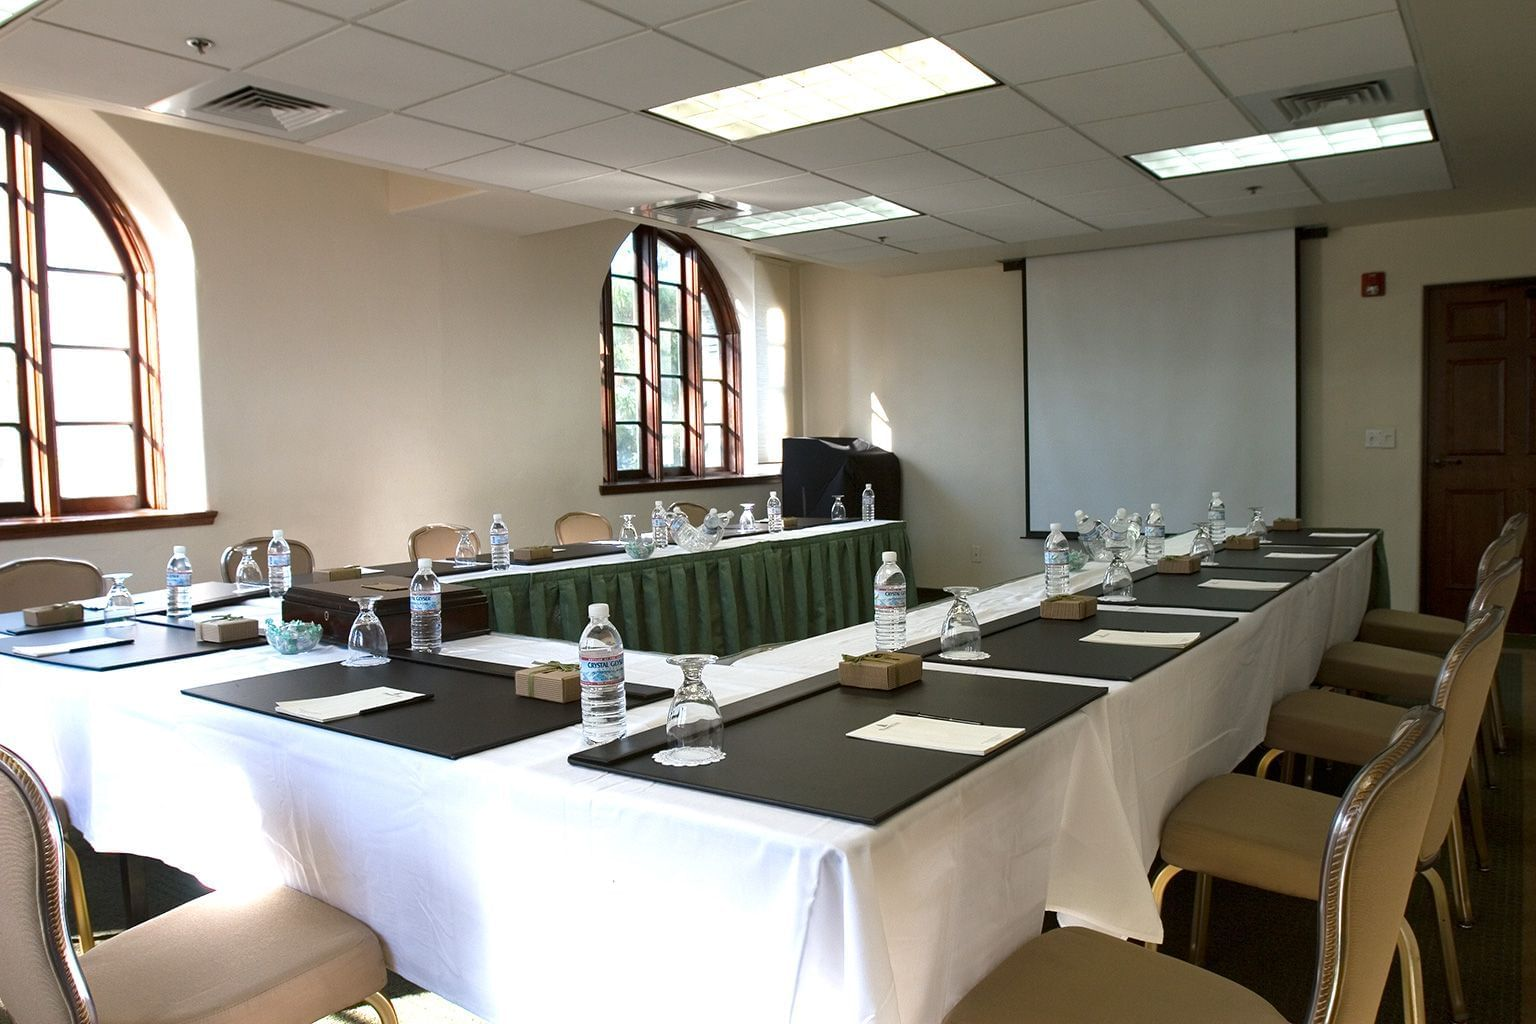 conference room with u-shaped table and projector